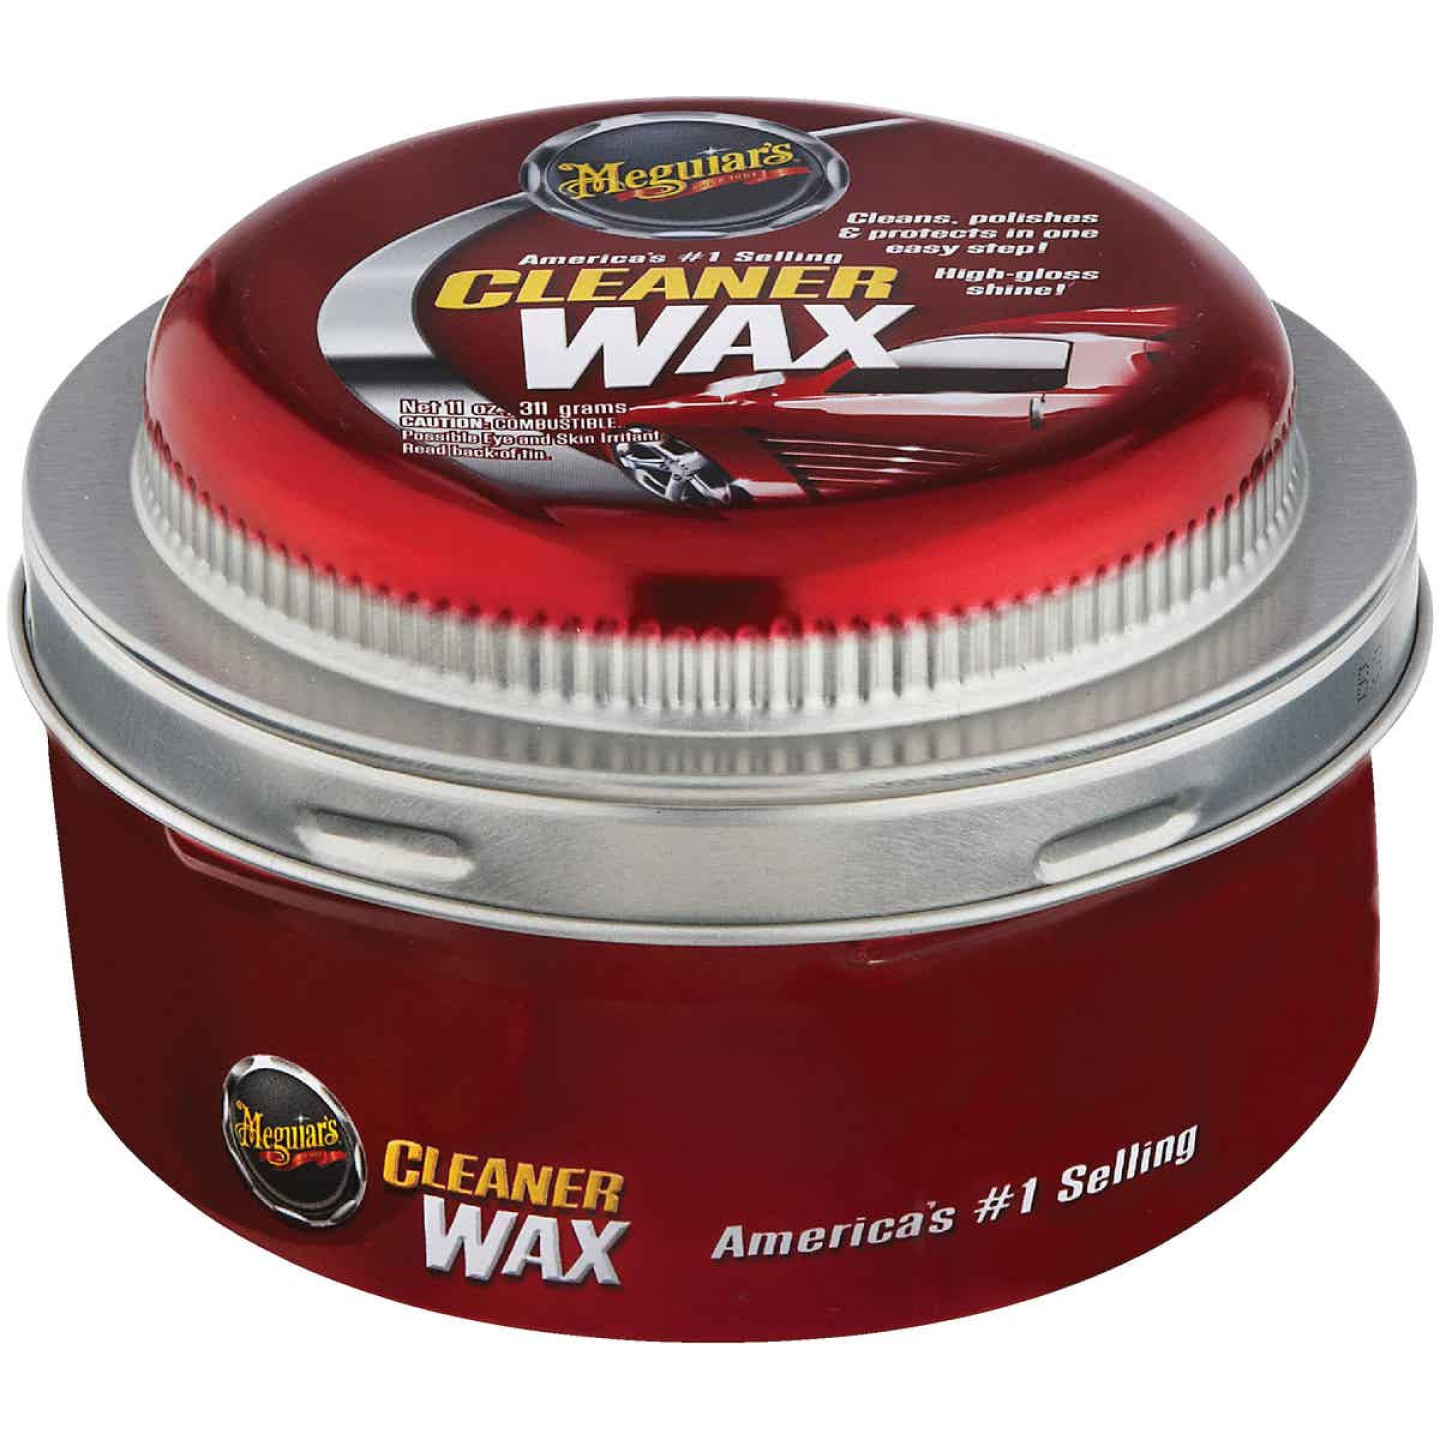 Meguiars 11 Oz. Paste Car Wax Image 1